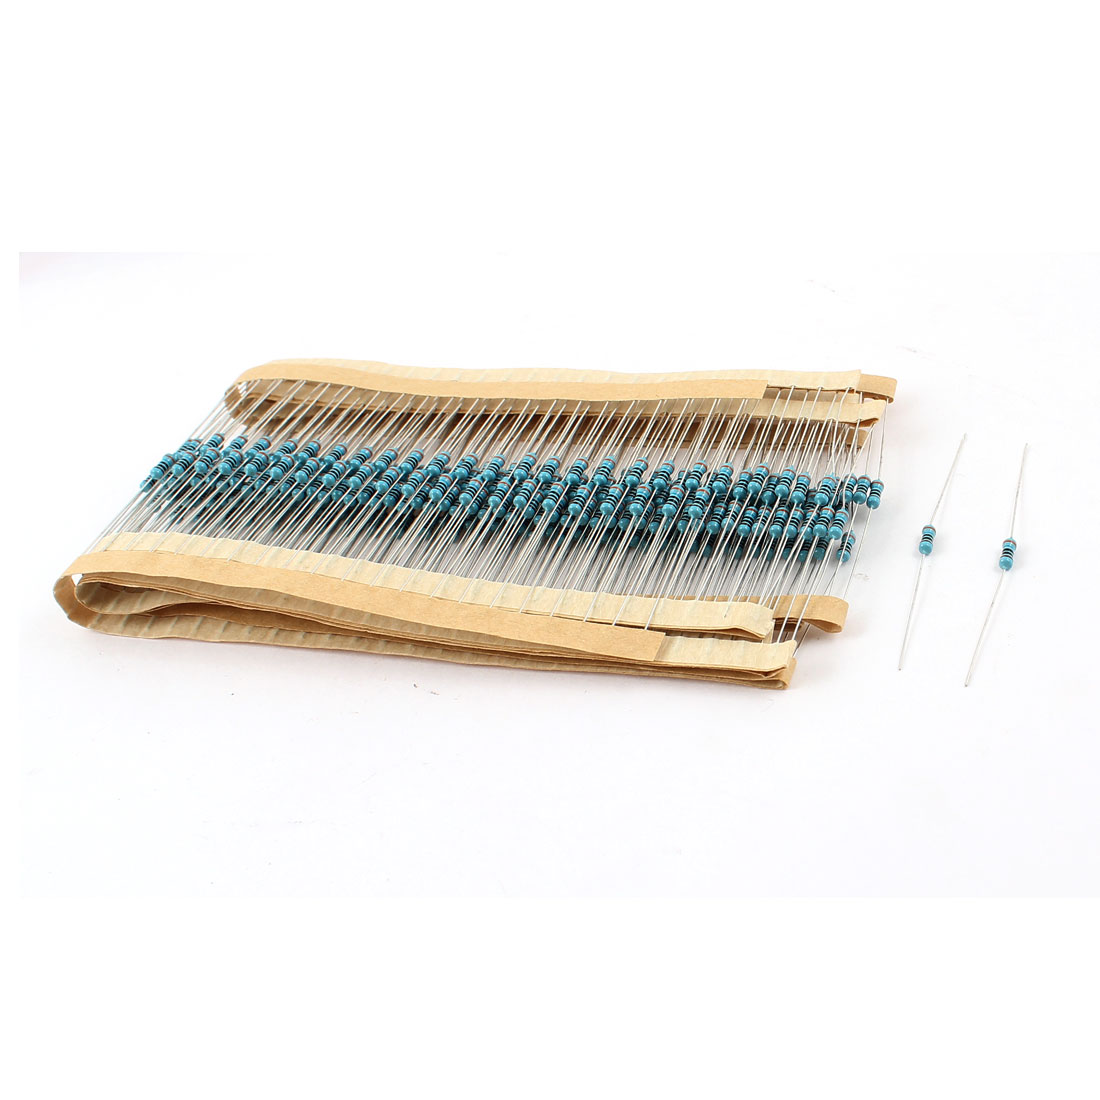 300 Pcs 1/4W 1% 360 Ohm Axial Lead Type Metal Film Resistor